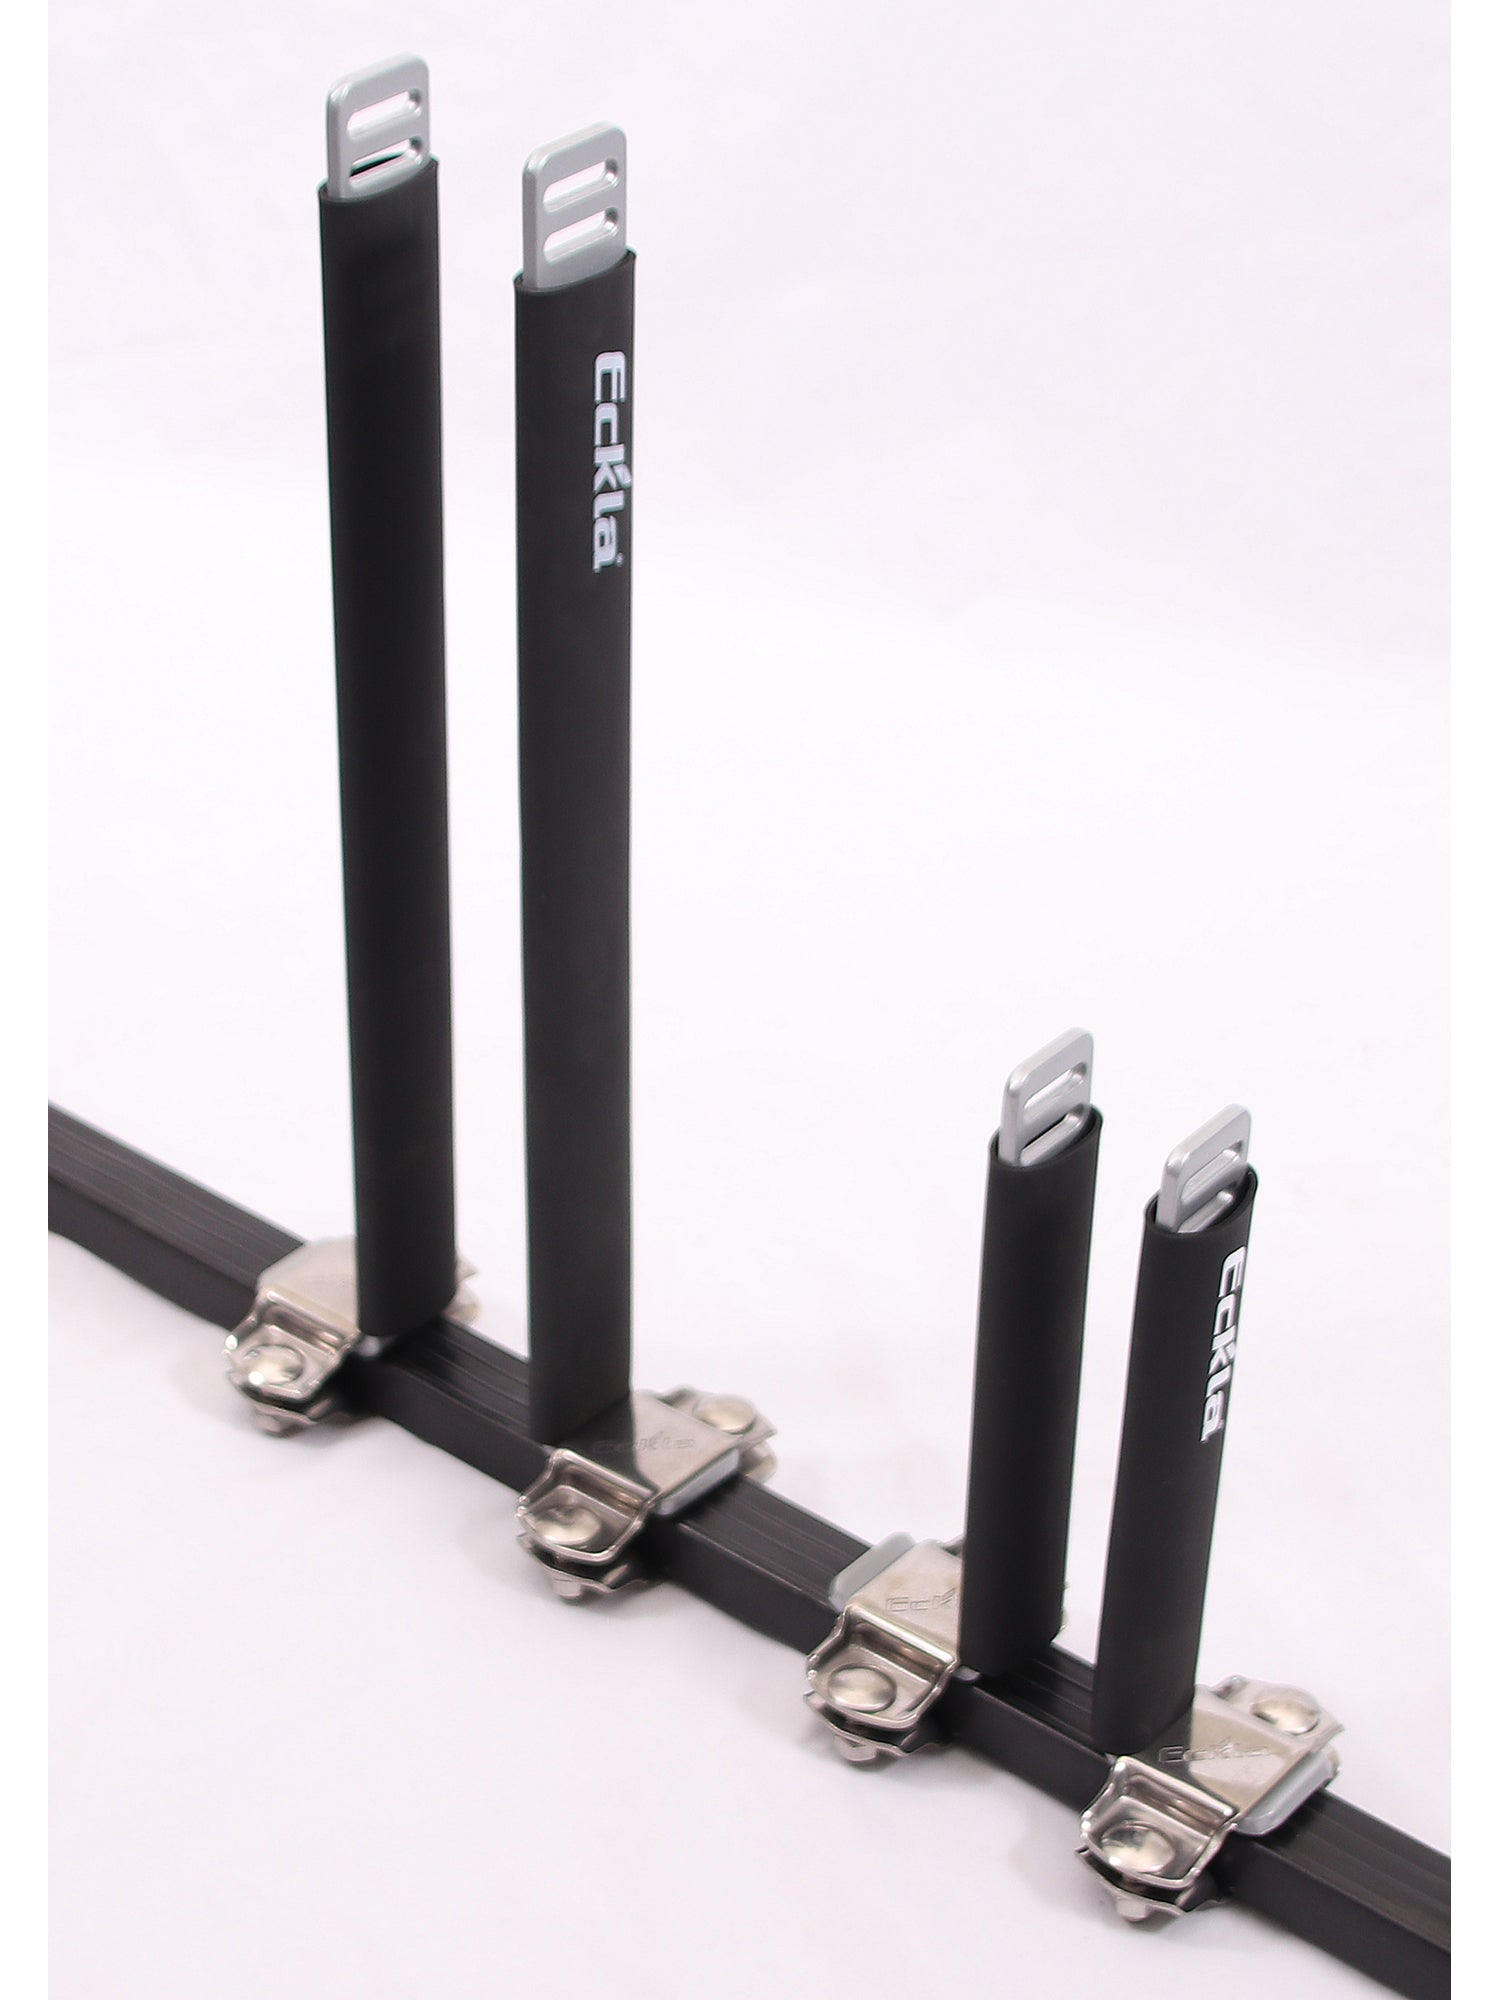 Eckla Upright Bars